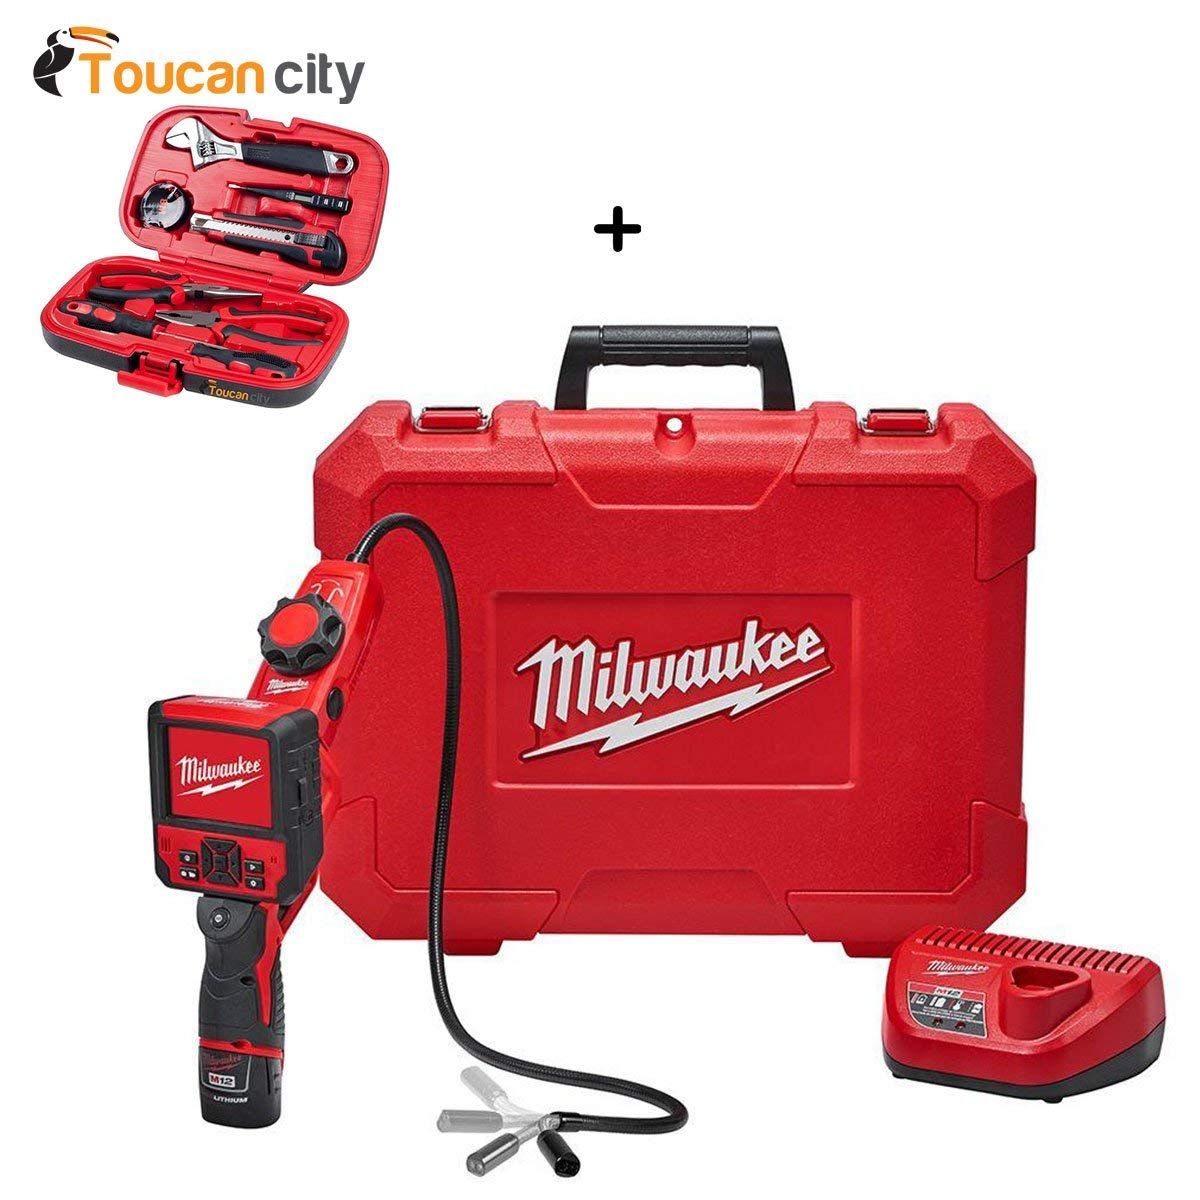 Milwaukee M12 12-Volt Lithium-Ion Cordless M-SPECTOR FLEX 3 ft. Inspection Camera Cable W/ Pivot View Kit W/(1) 1.5Ah Battery 2317-21 and Toucan City Tool Kit (9-Piece)